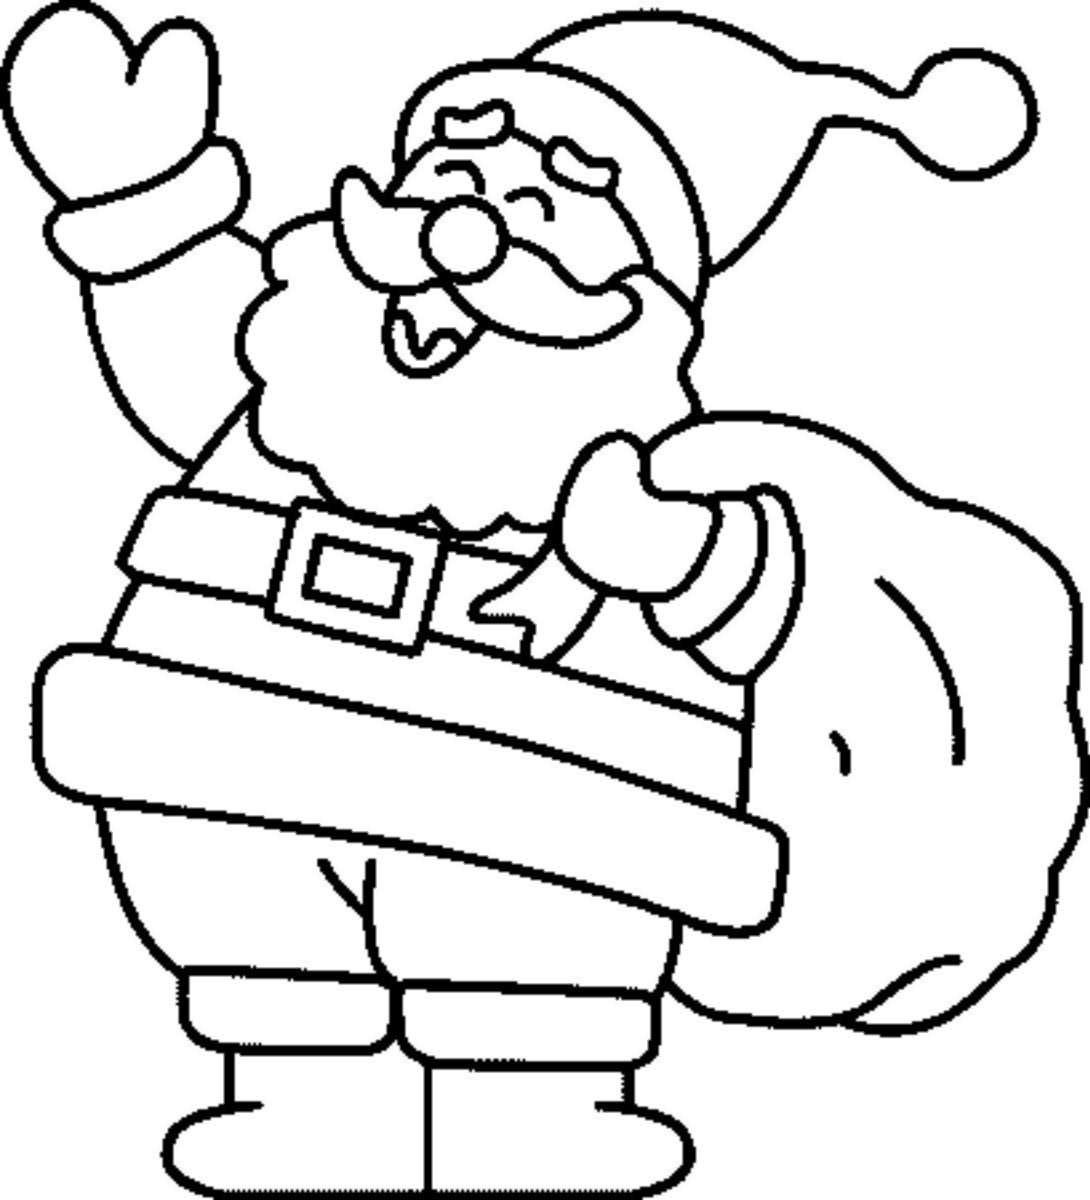 Christmas Coloring Pages Santa Coloring Pages Christmas Coloring Sheets Free Christmas Coloring Pages